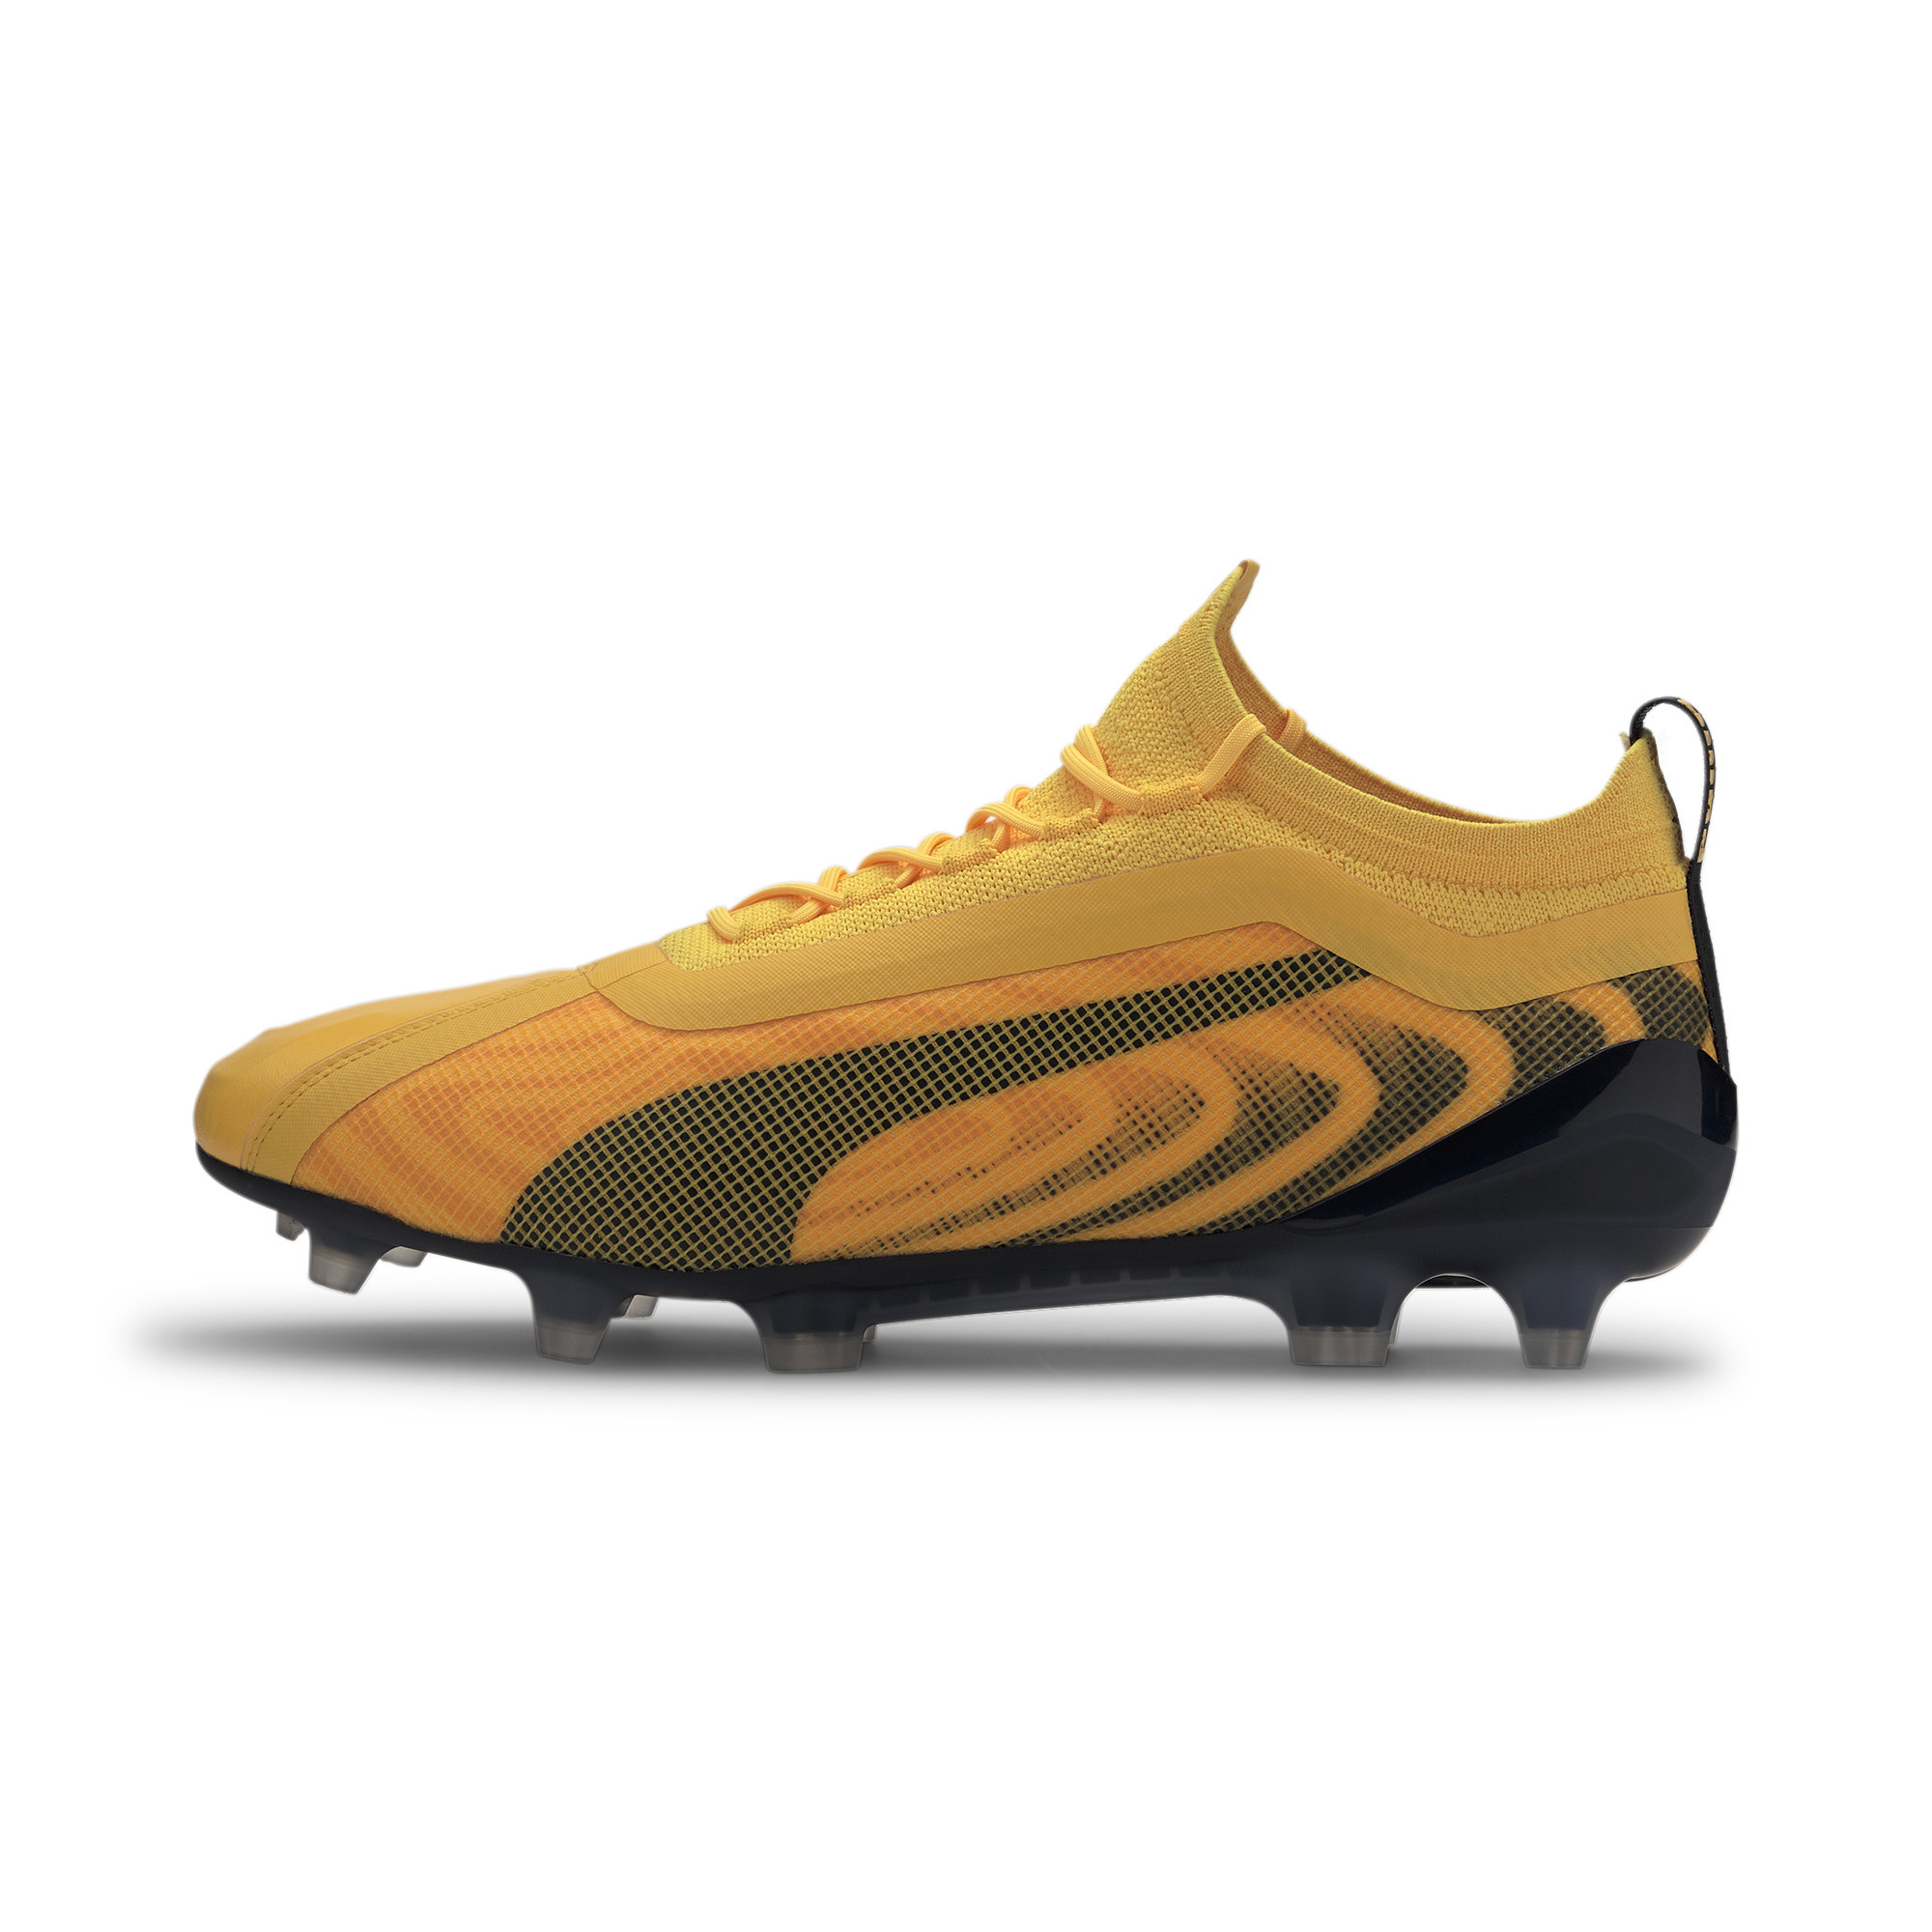 PUMA ONE 20.1 FGAG Men's Football Boots